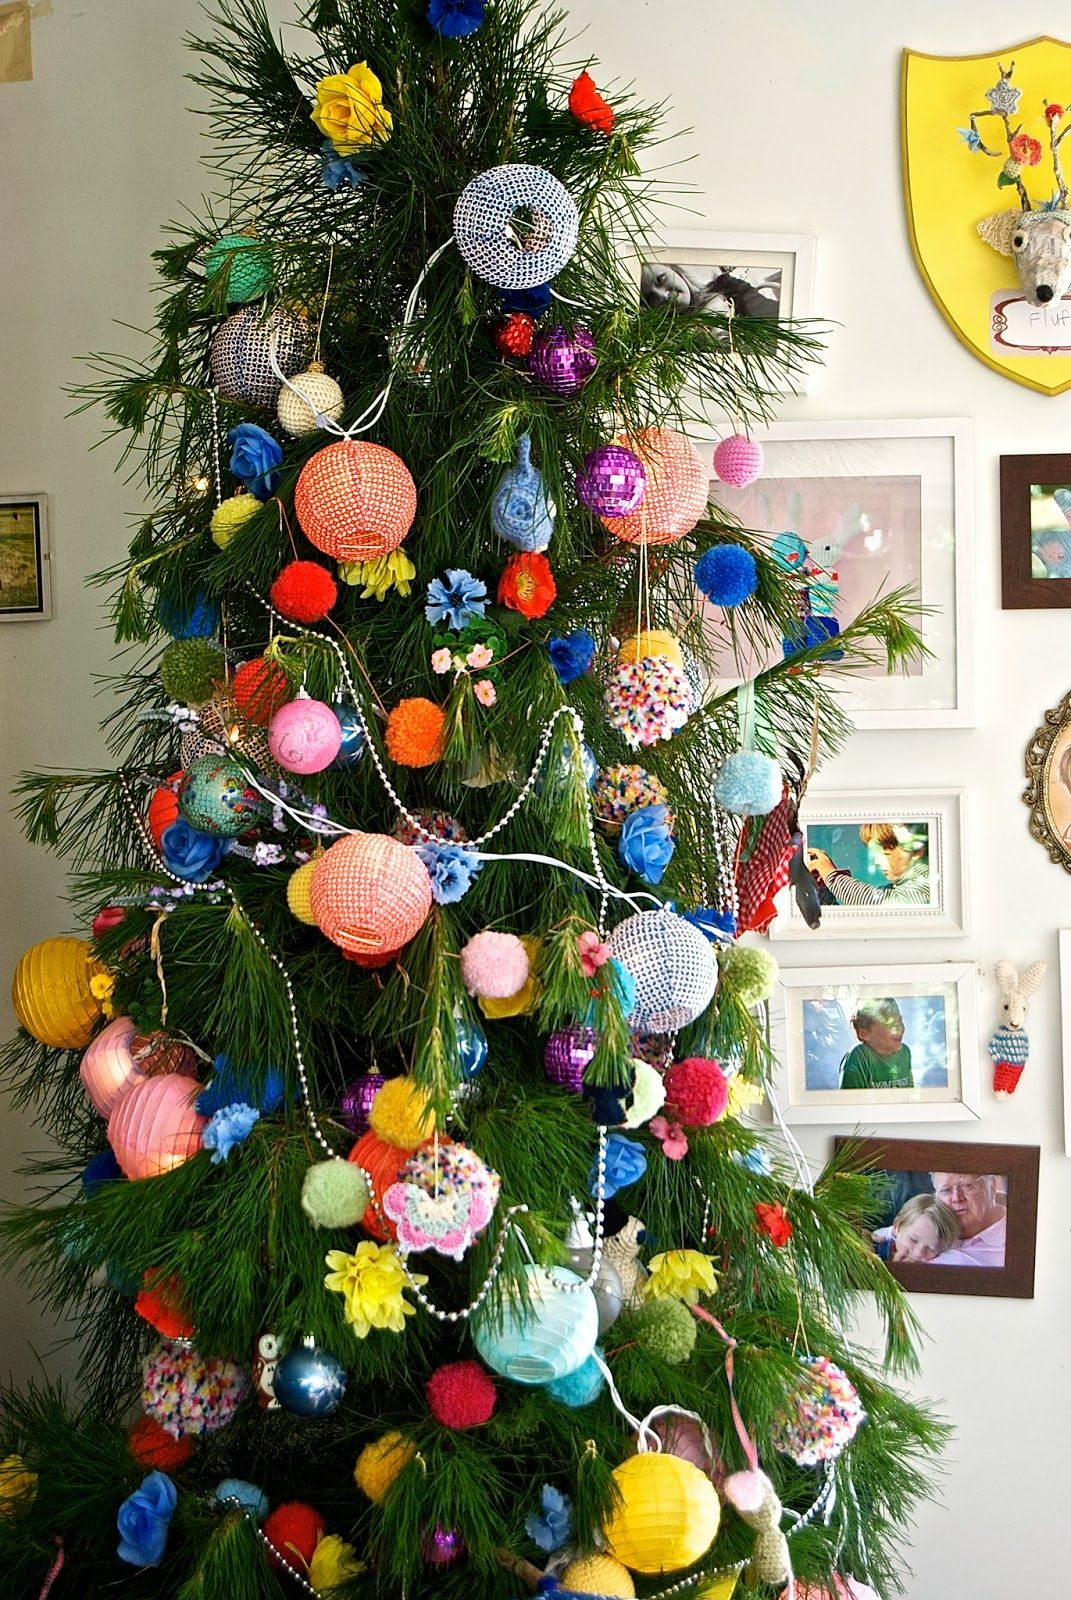 Greedy For Colour Our Happy Messy Christmas Tree Christmas Tree Outdoor Christmas Tree Decorations Christmas Tree Star Topper